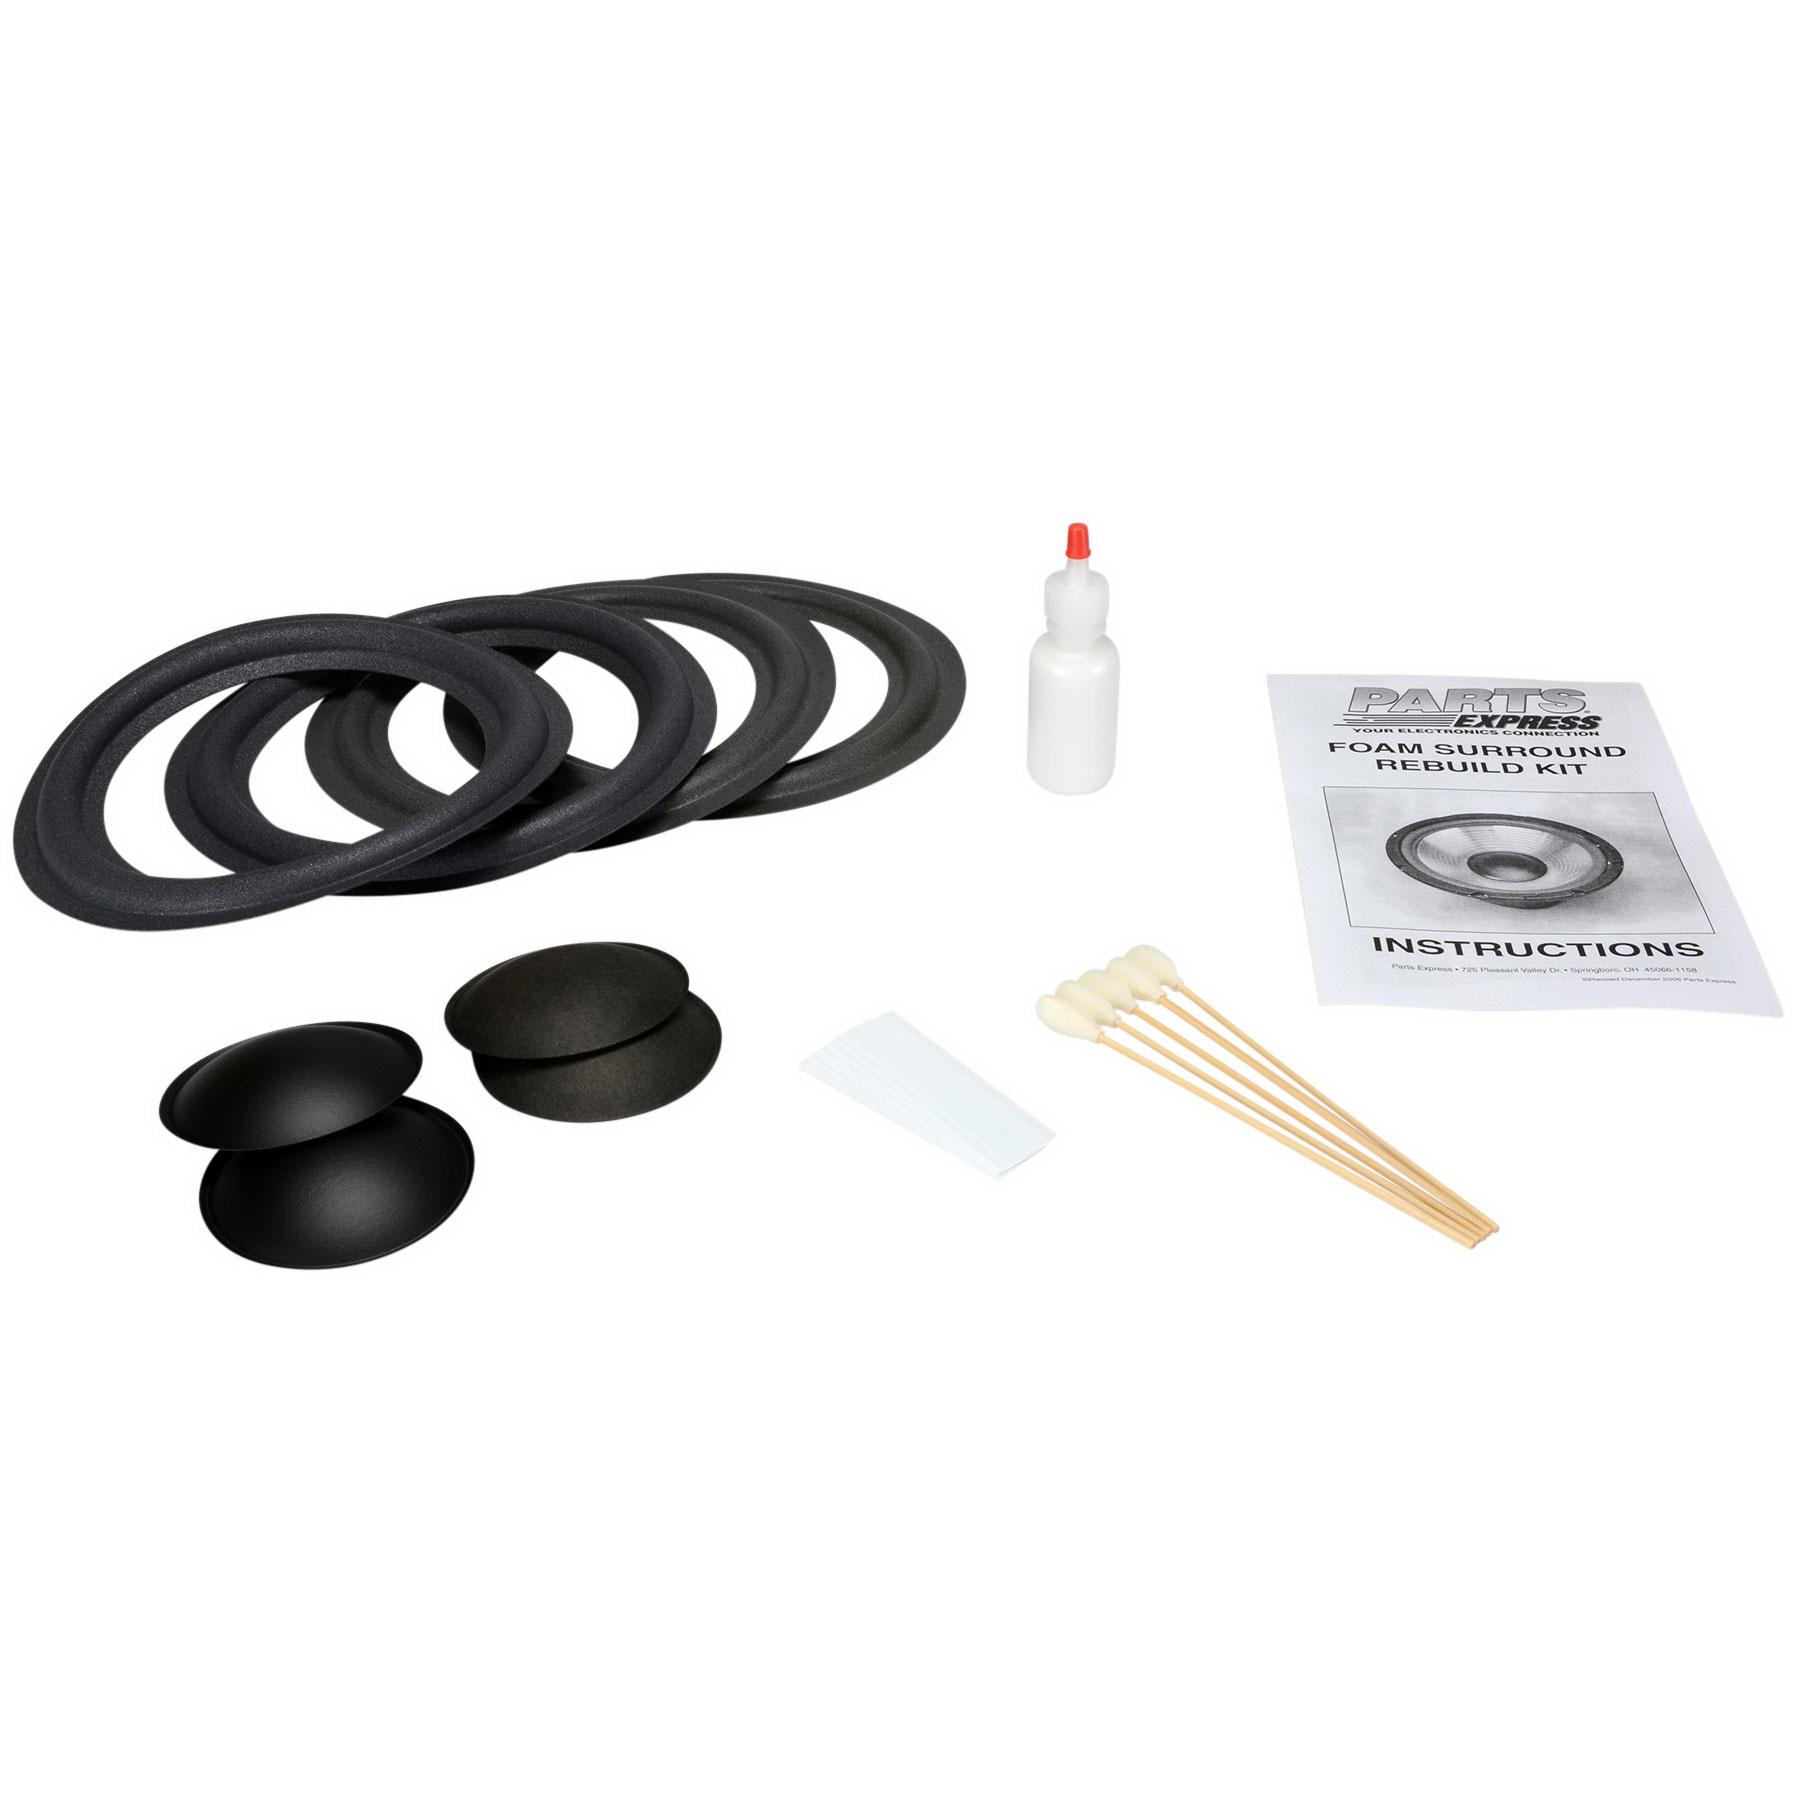 "Parts Express Speaker Surround Re-Foam Repair Kit For 8"" Speaker"